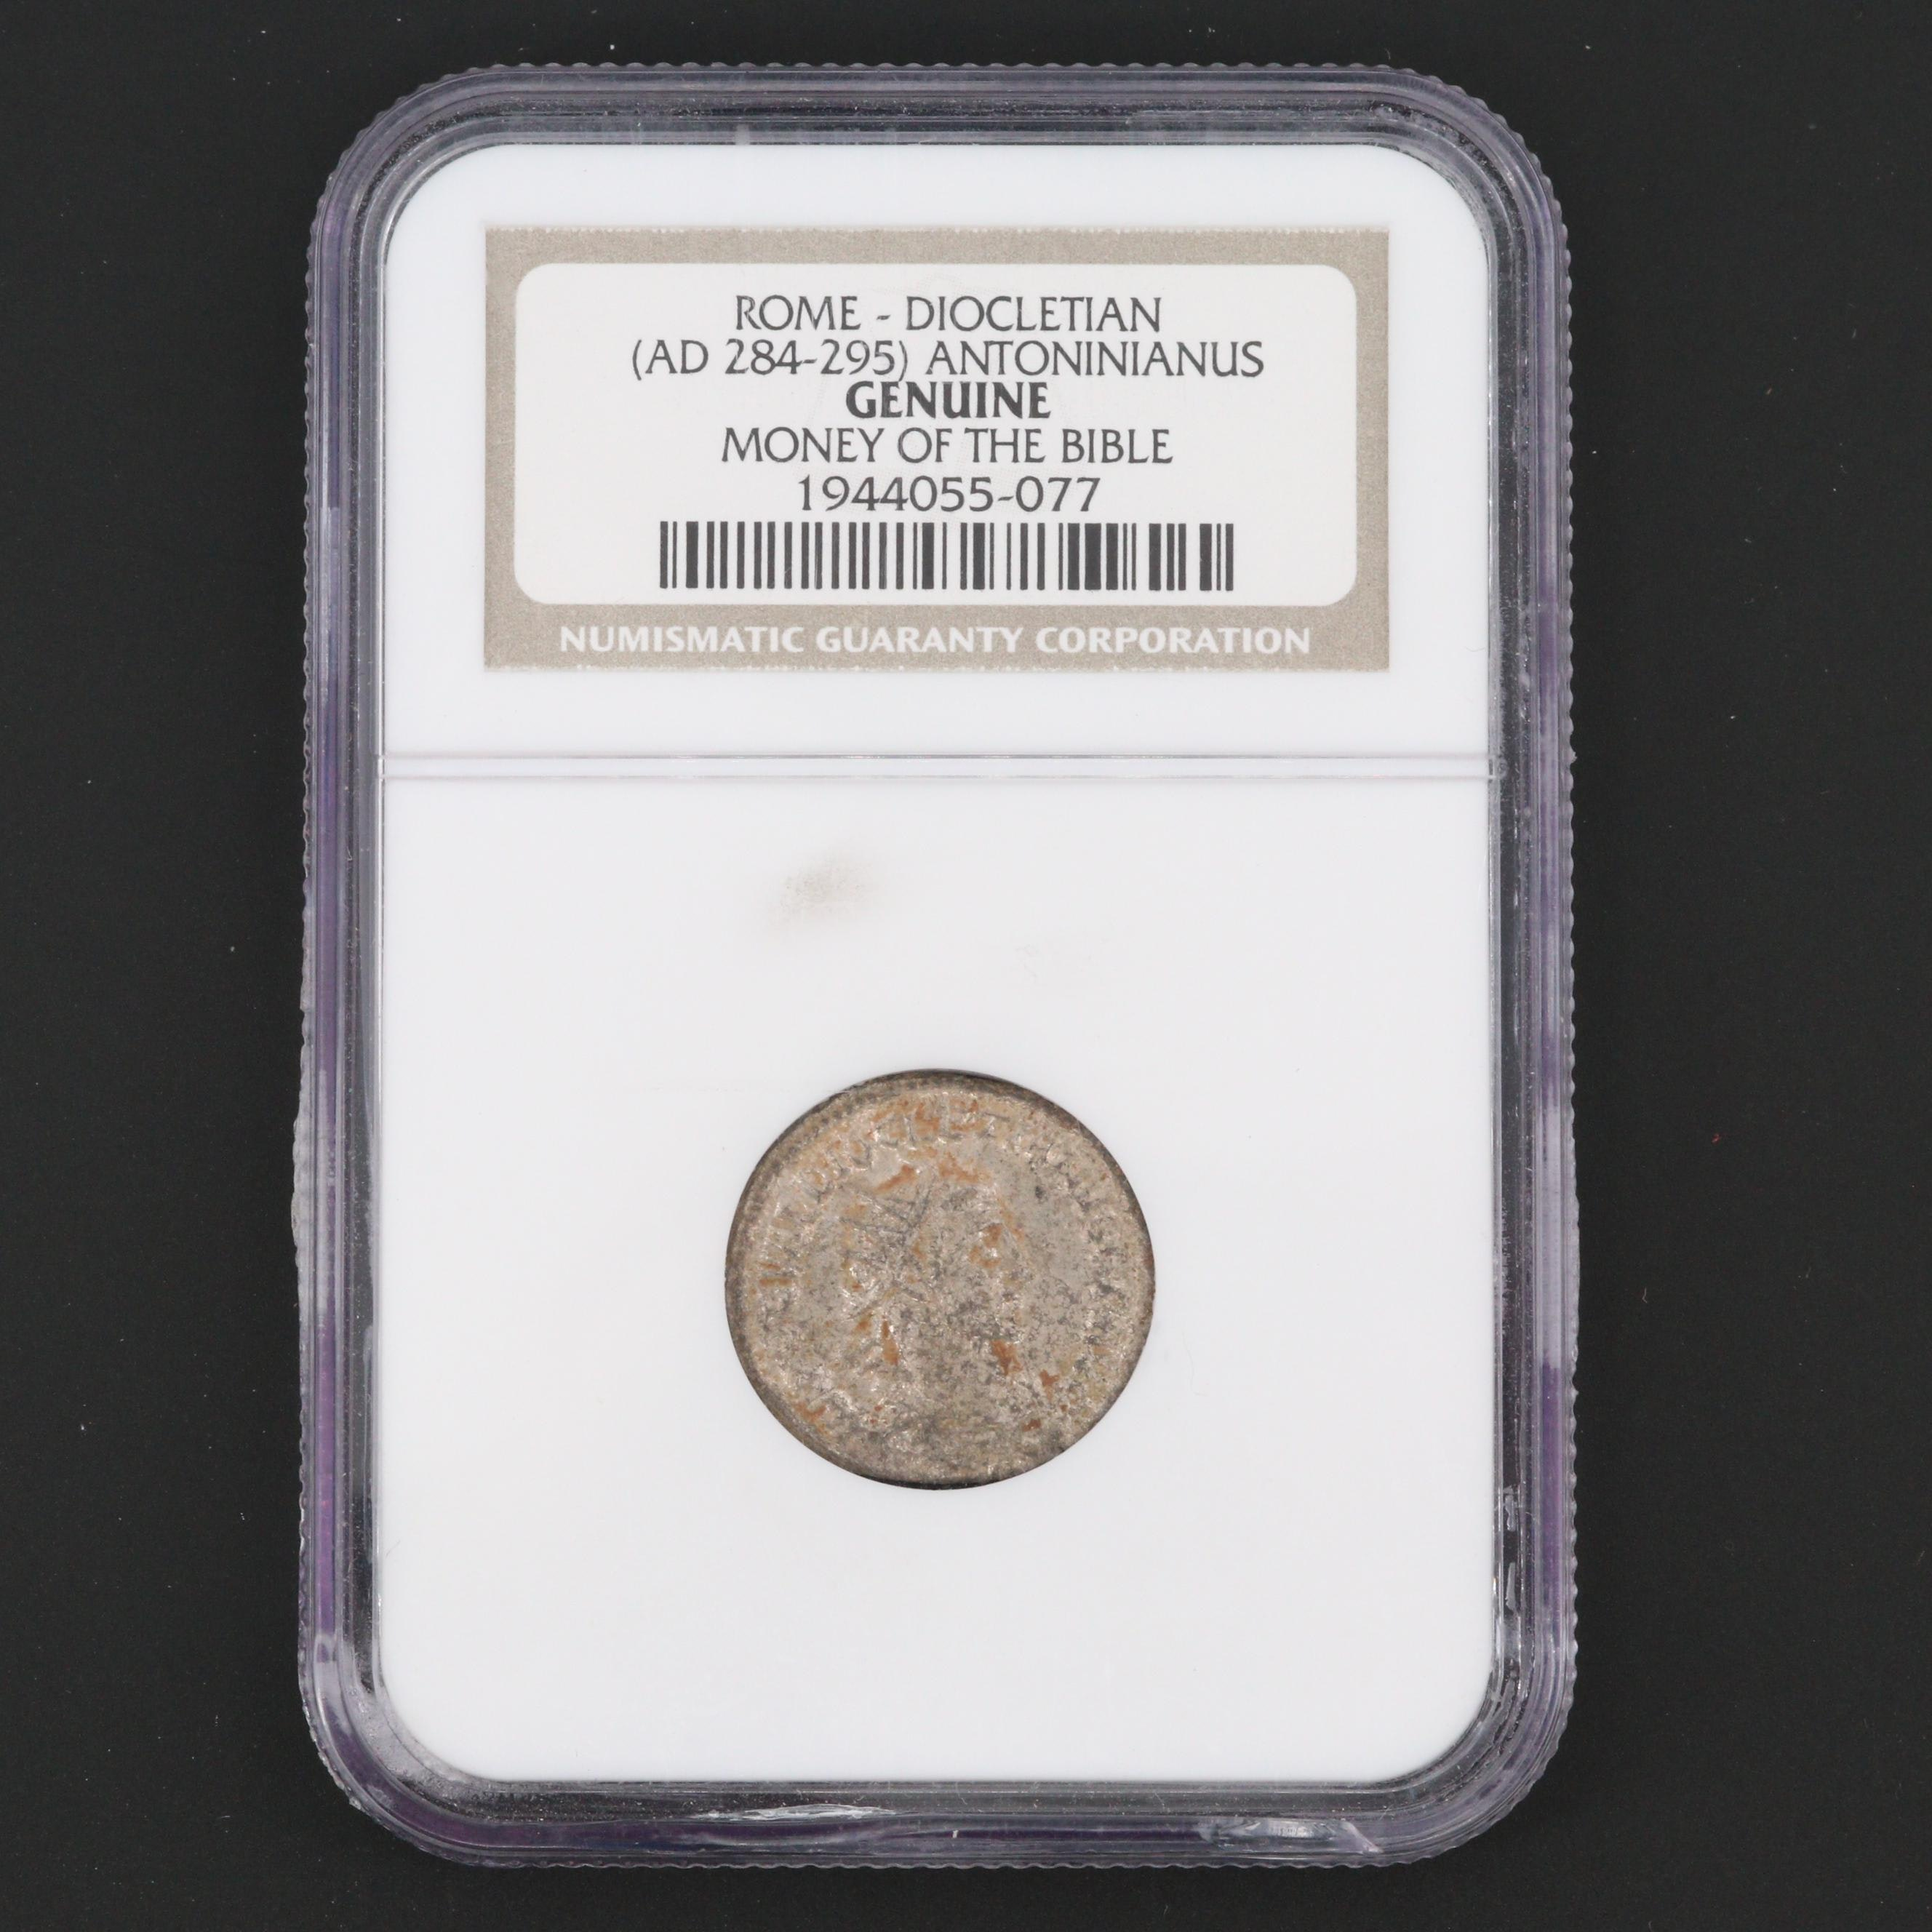 NGC Graded Genuine Ancient Rome Diocletian Antoninianus